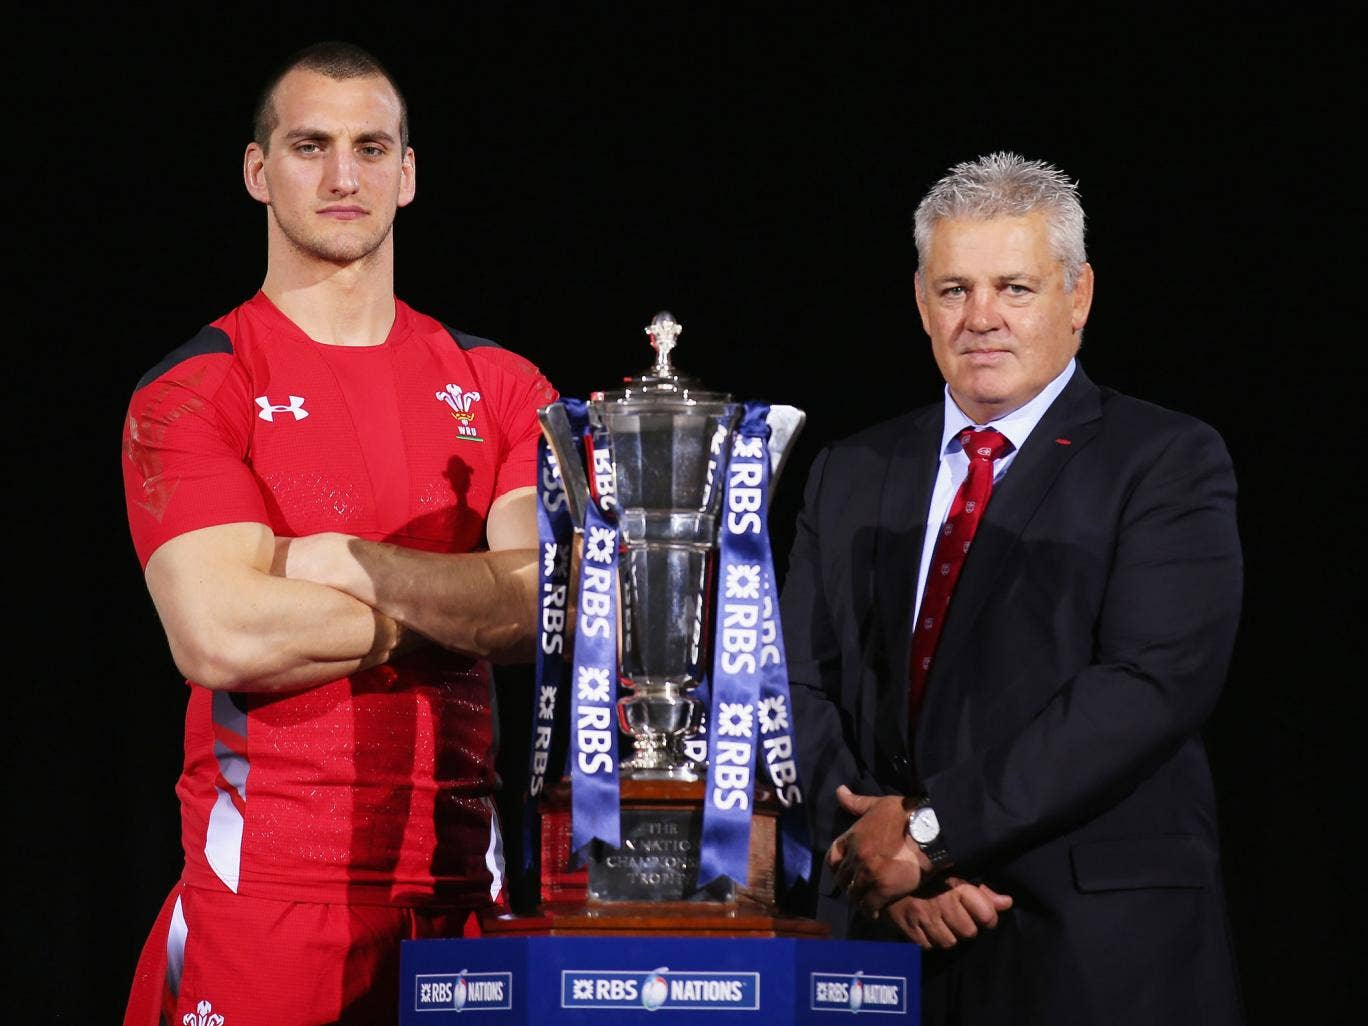 Sam Warburton and Warren Gatland pose with the Six Nations trophy